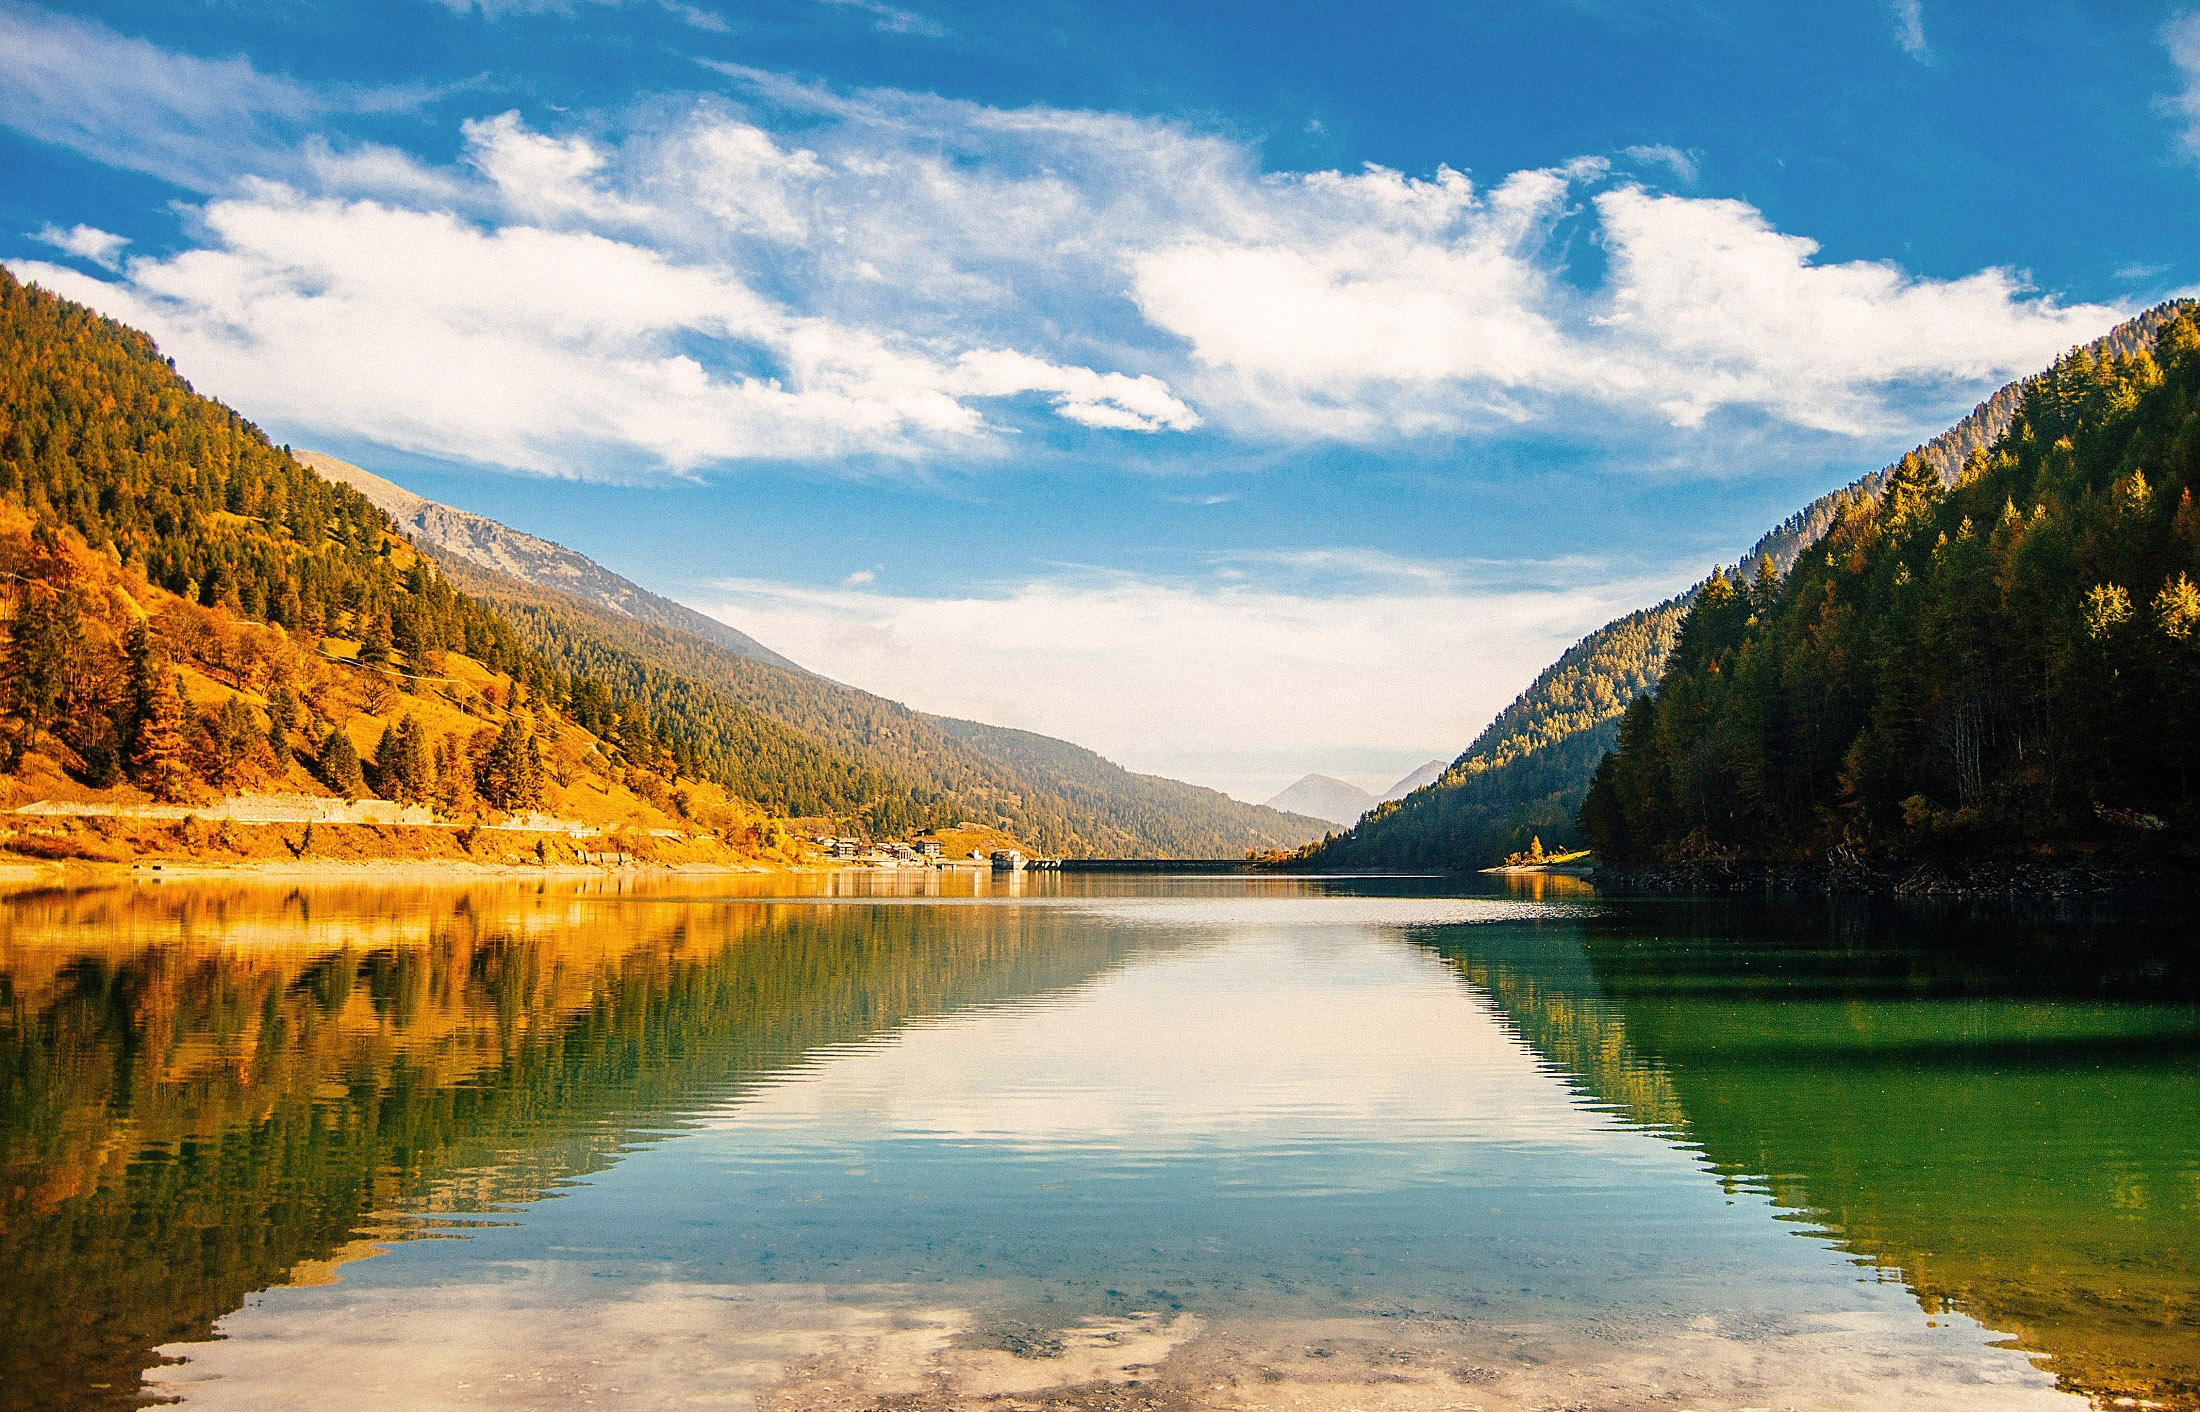 Serene landscape of the mountains and lake with sky image for Landscape photos